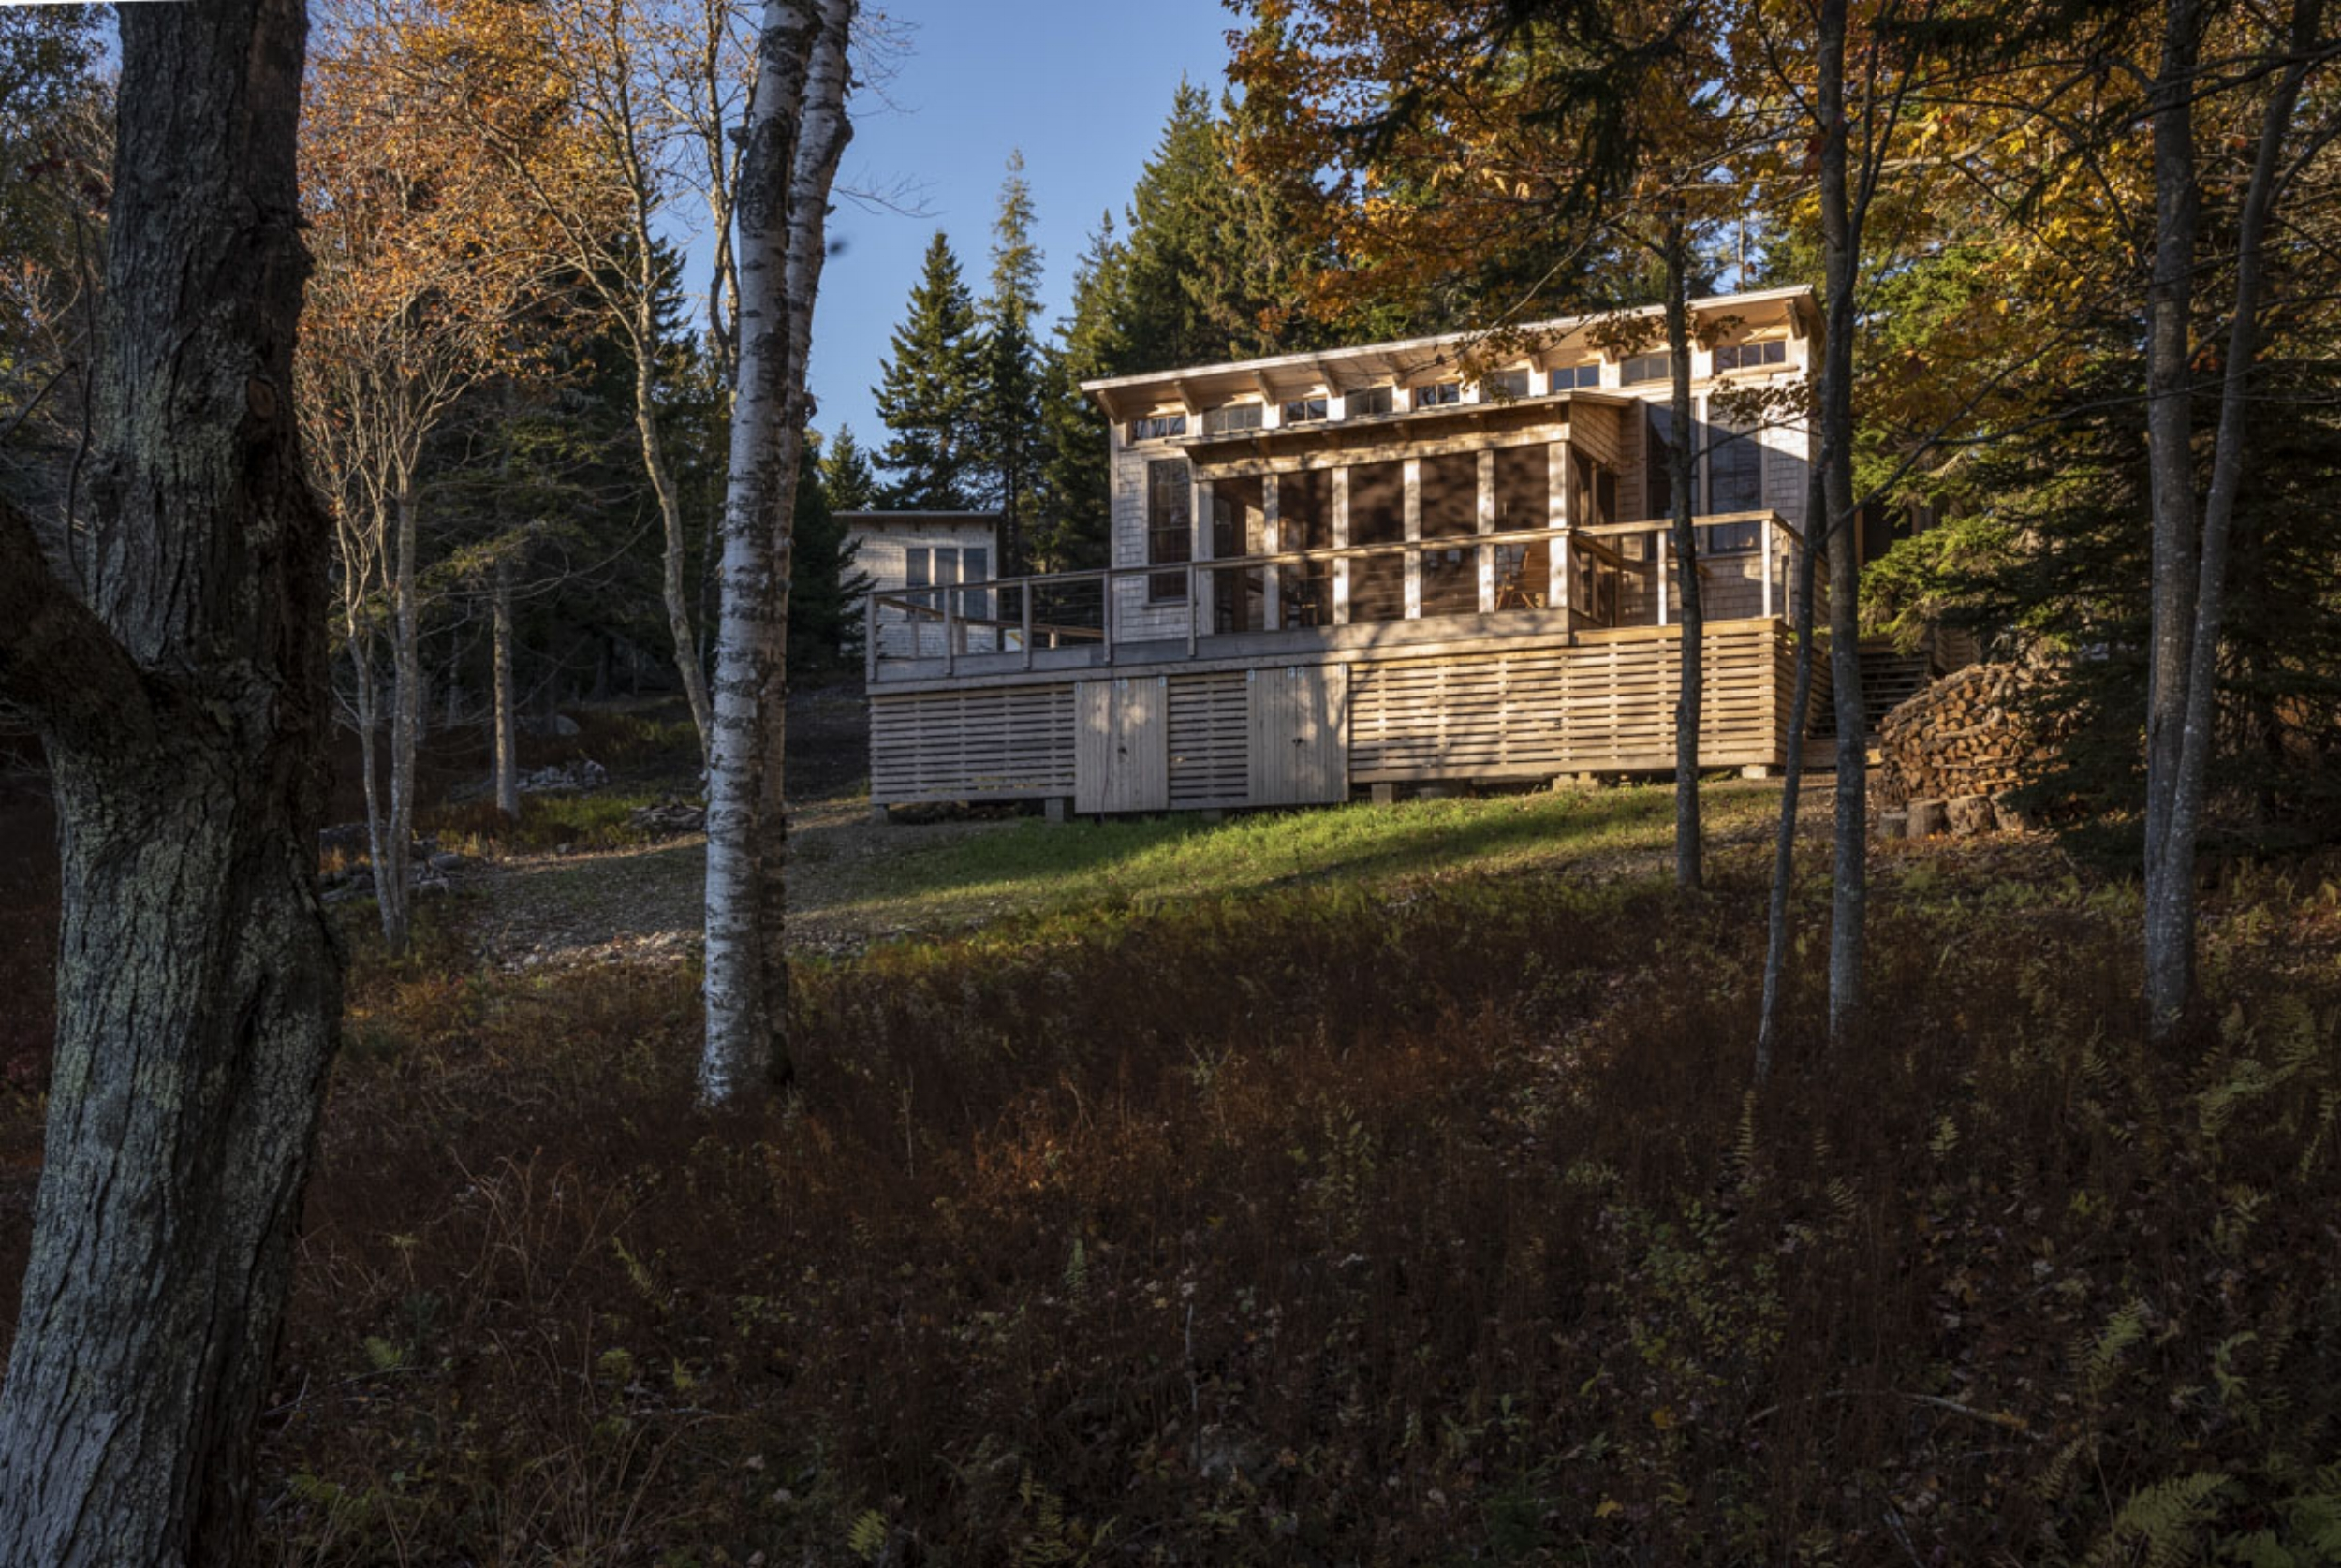 phopro-ext-hill_cabin_s_facade-150ppi8x5.jpg